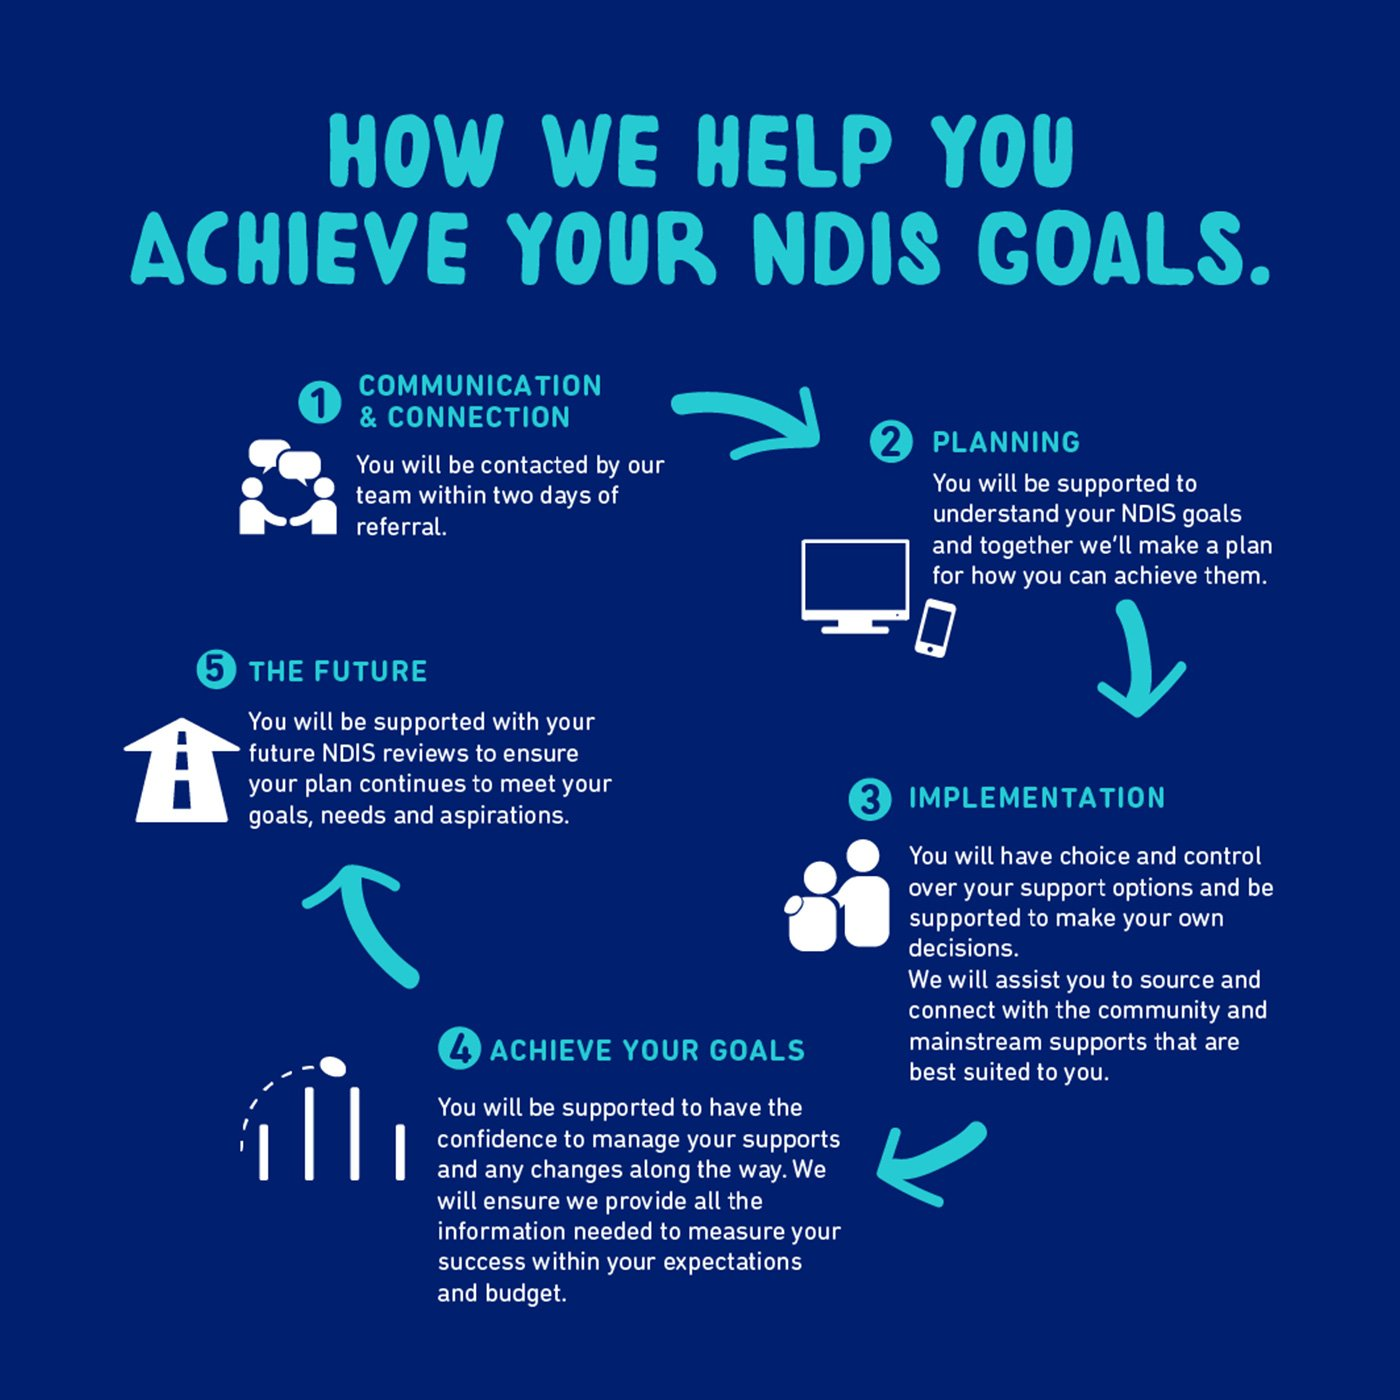 flow chart titled 'how we help you achieve your NDIS goals', text version below